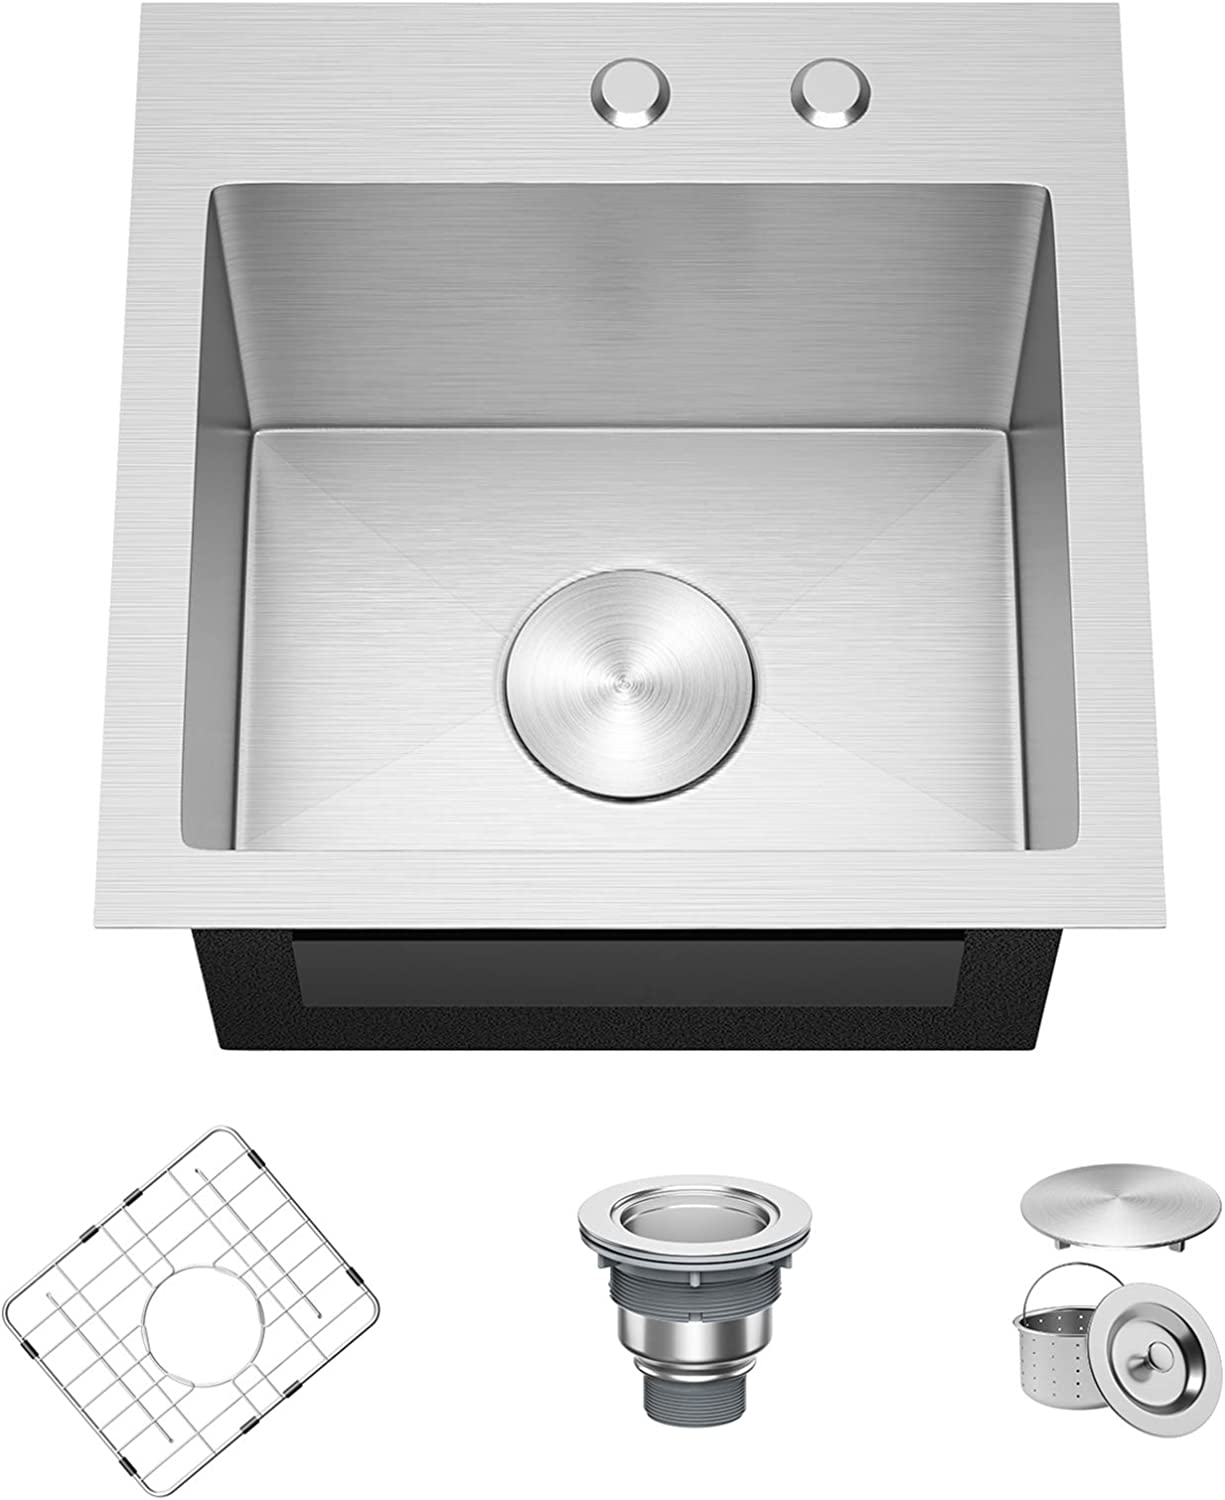 X Home 15 x 15 Inch Drop in Topmount Sink, 304 Stainless Steel Kitchen Sink, 16 Gauge Single Bowl Bar Prep Sink with R10 Corners